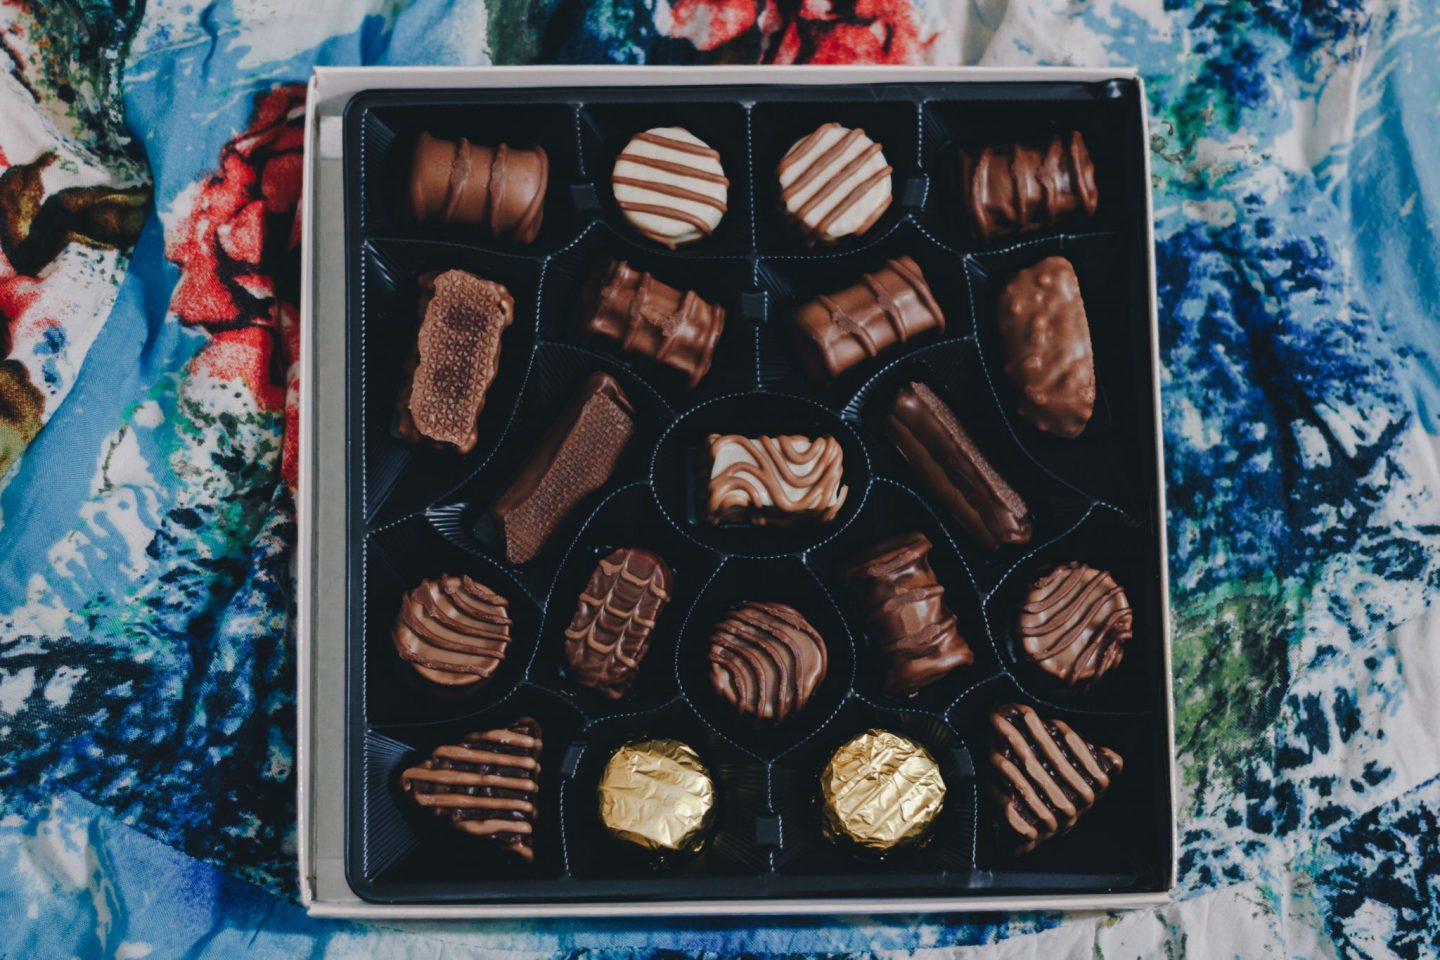 5 BEST CHOCOLATE GIFTING OPTIONS FOR WEDDING 2021